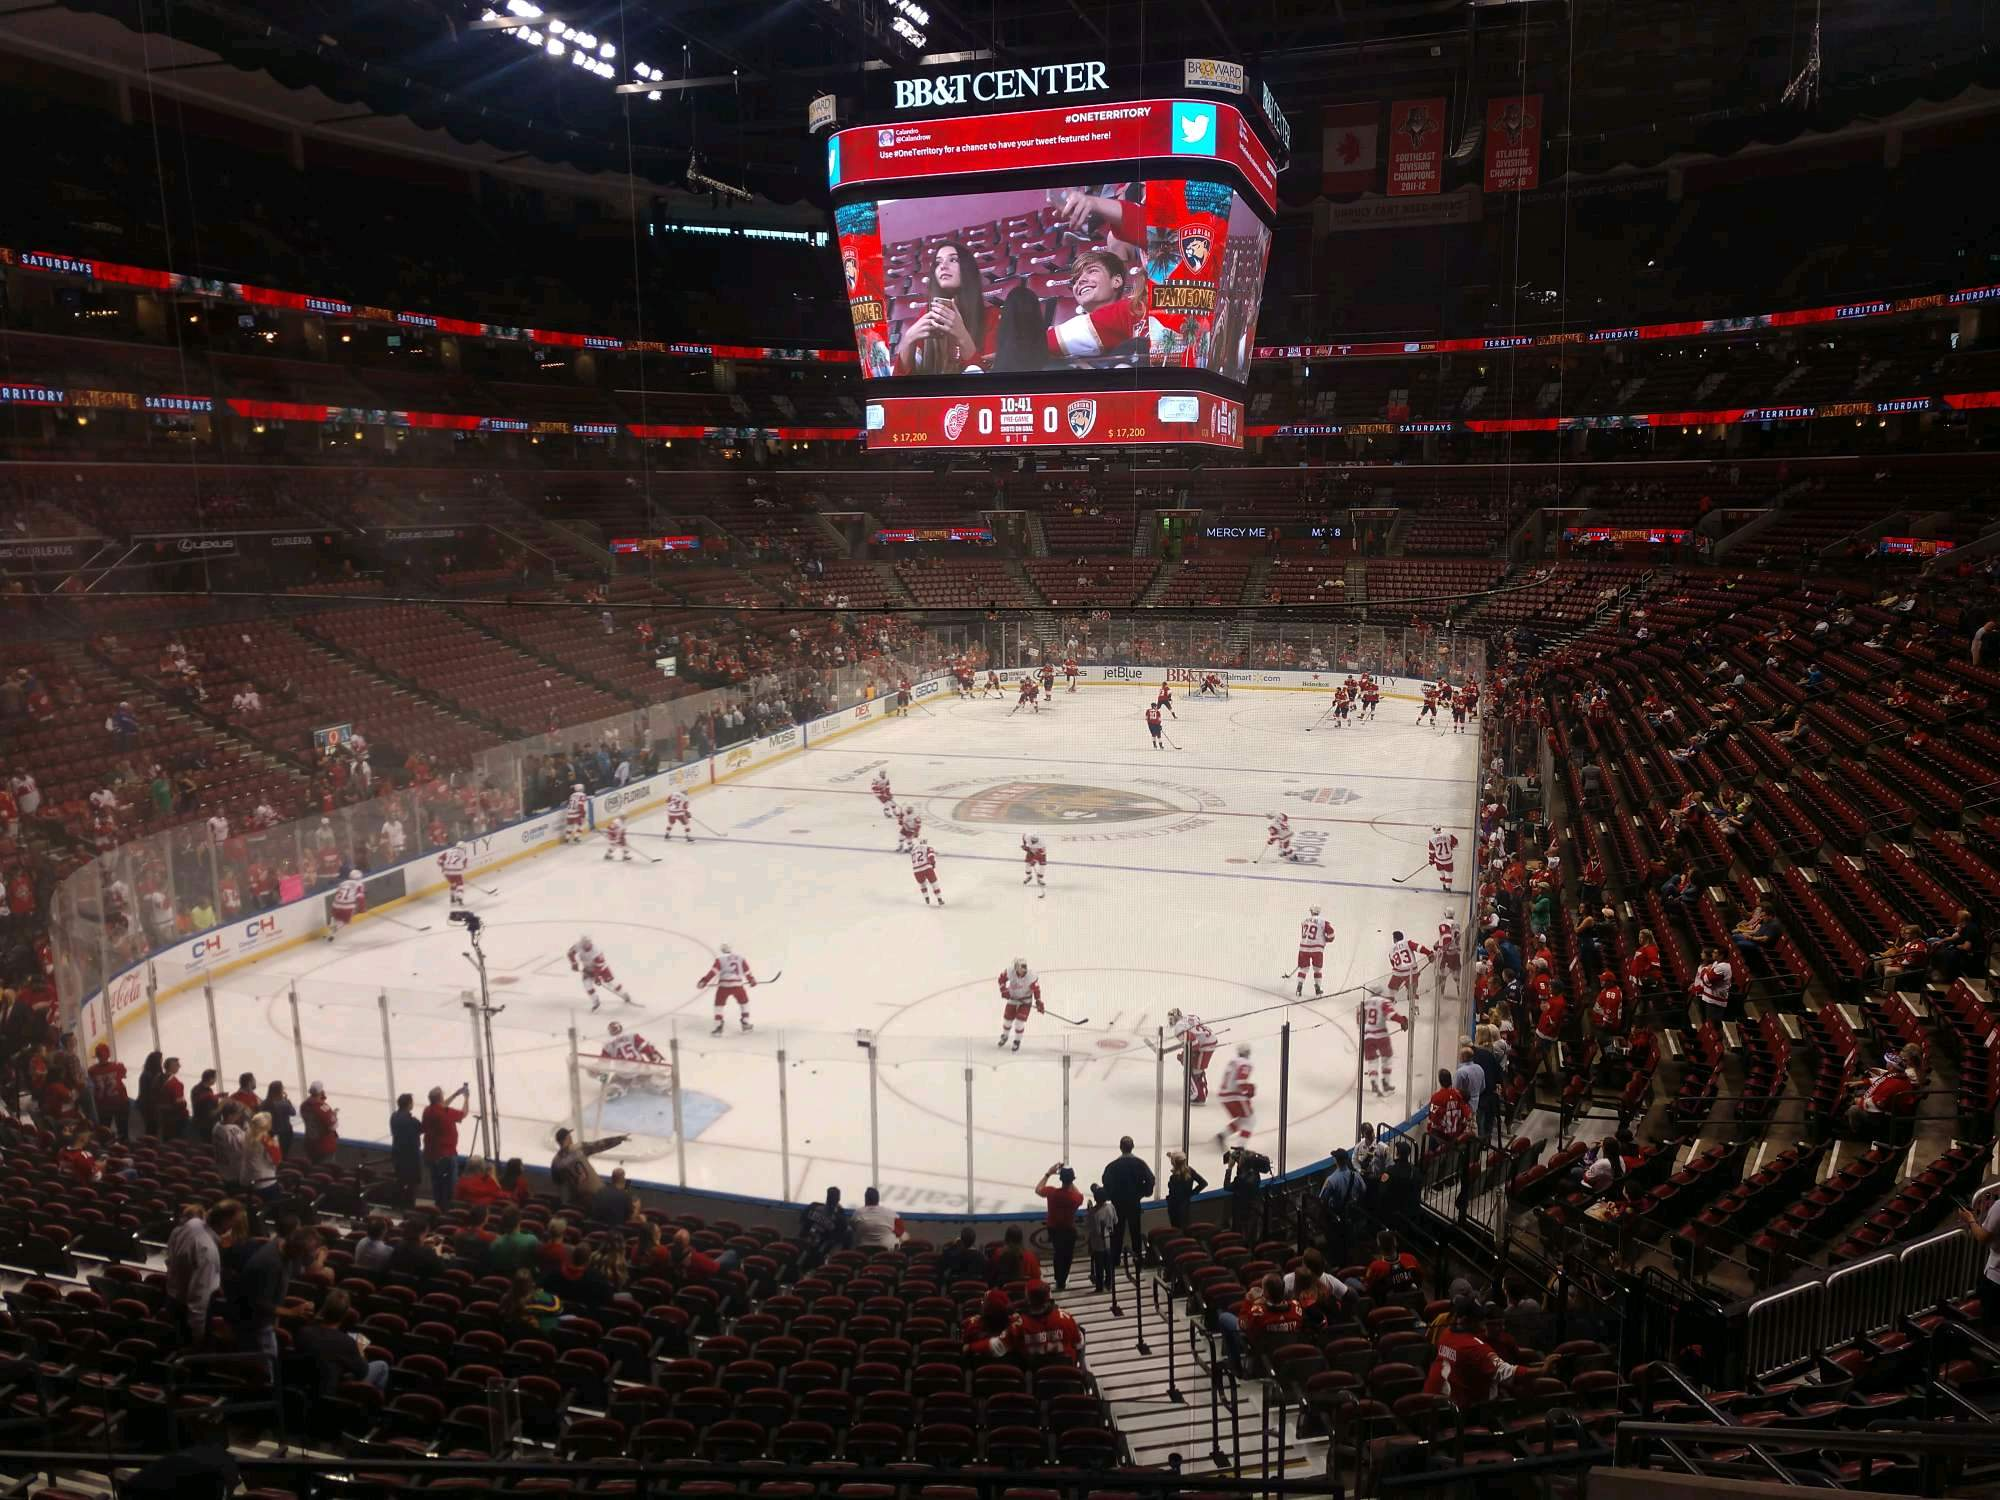 BB&T Center Section 125 Row 22 Seat 7